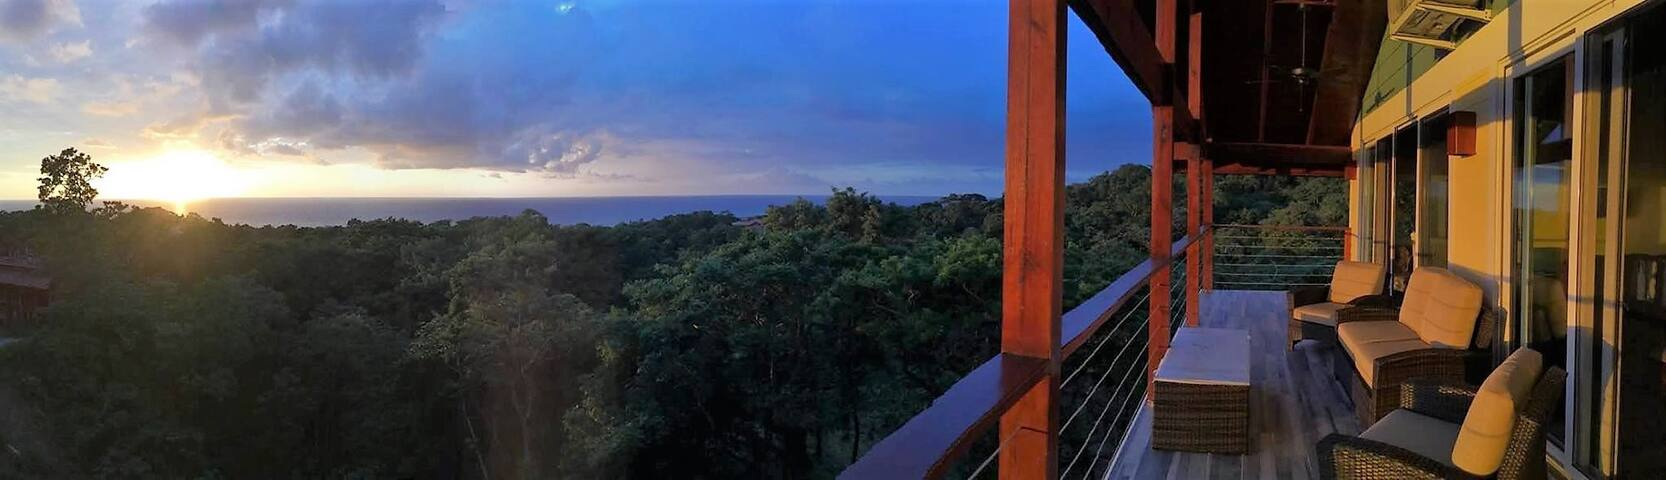 'Treetop House' overlooking jungle and Caribbean